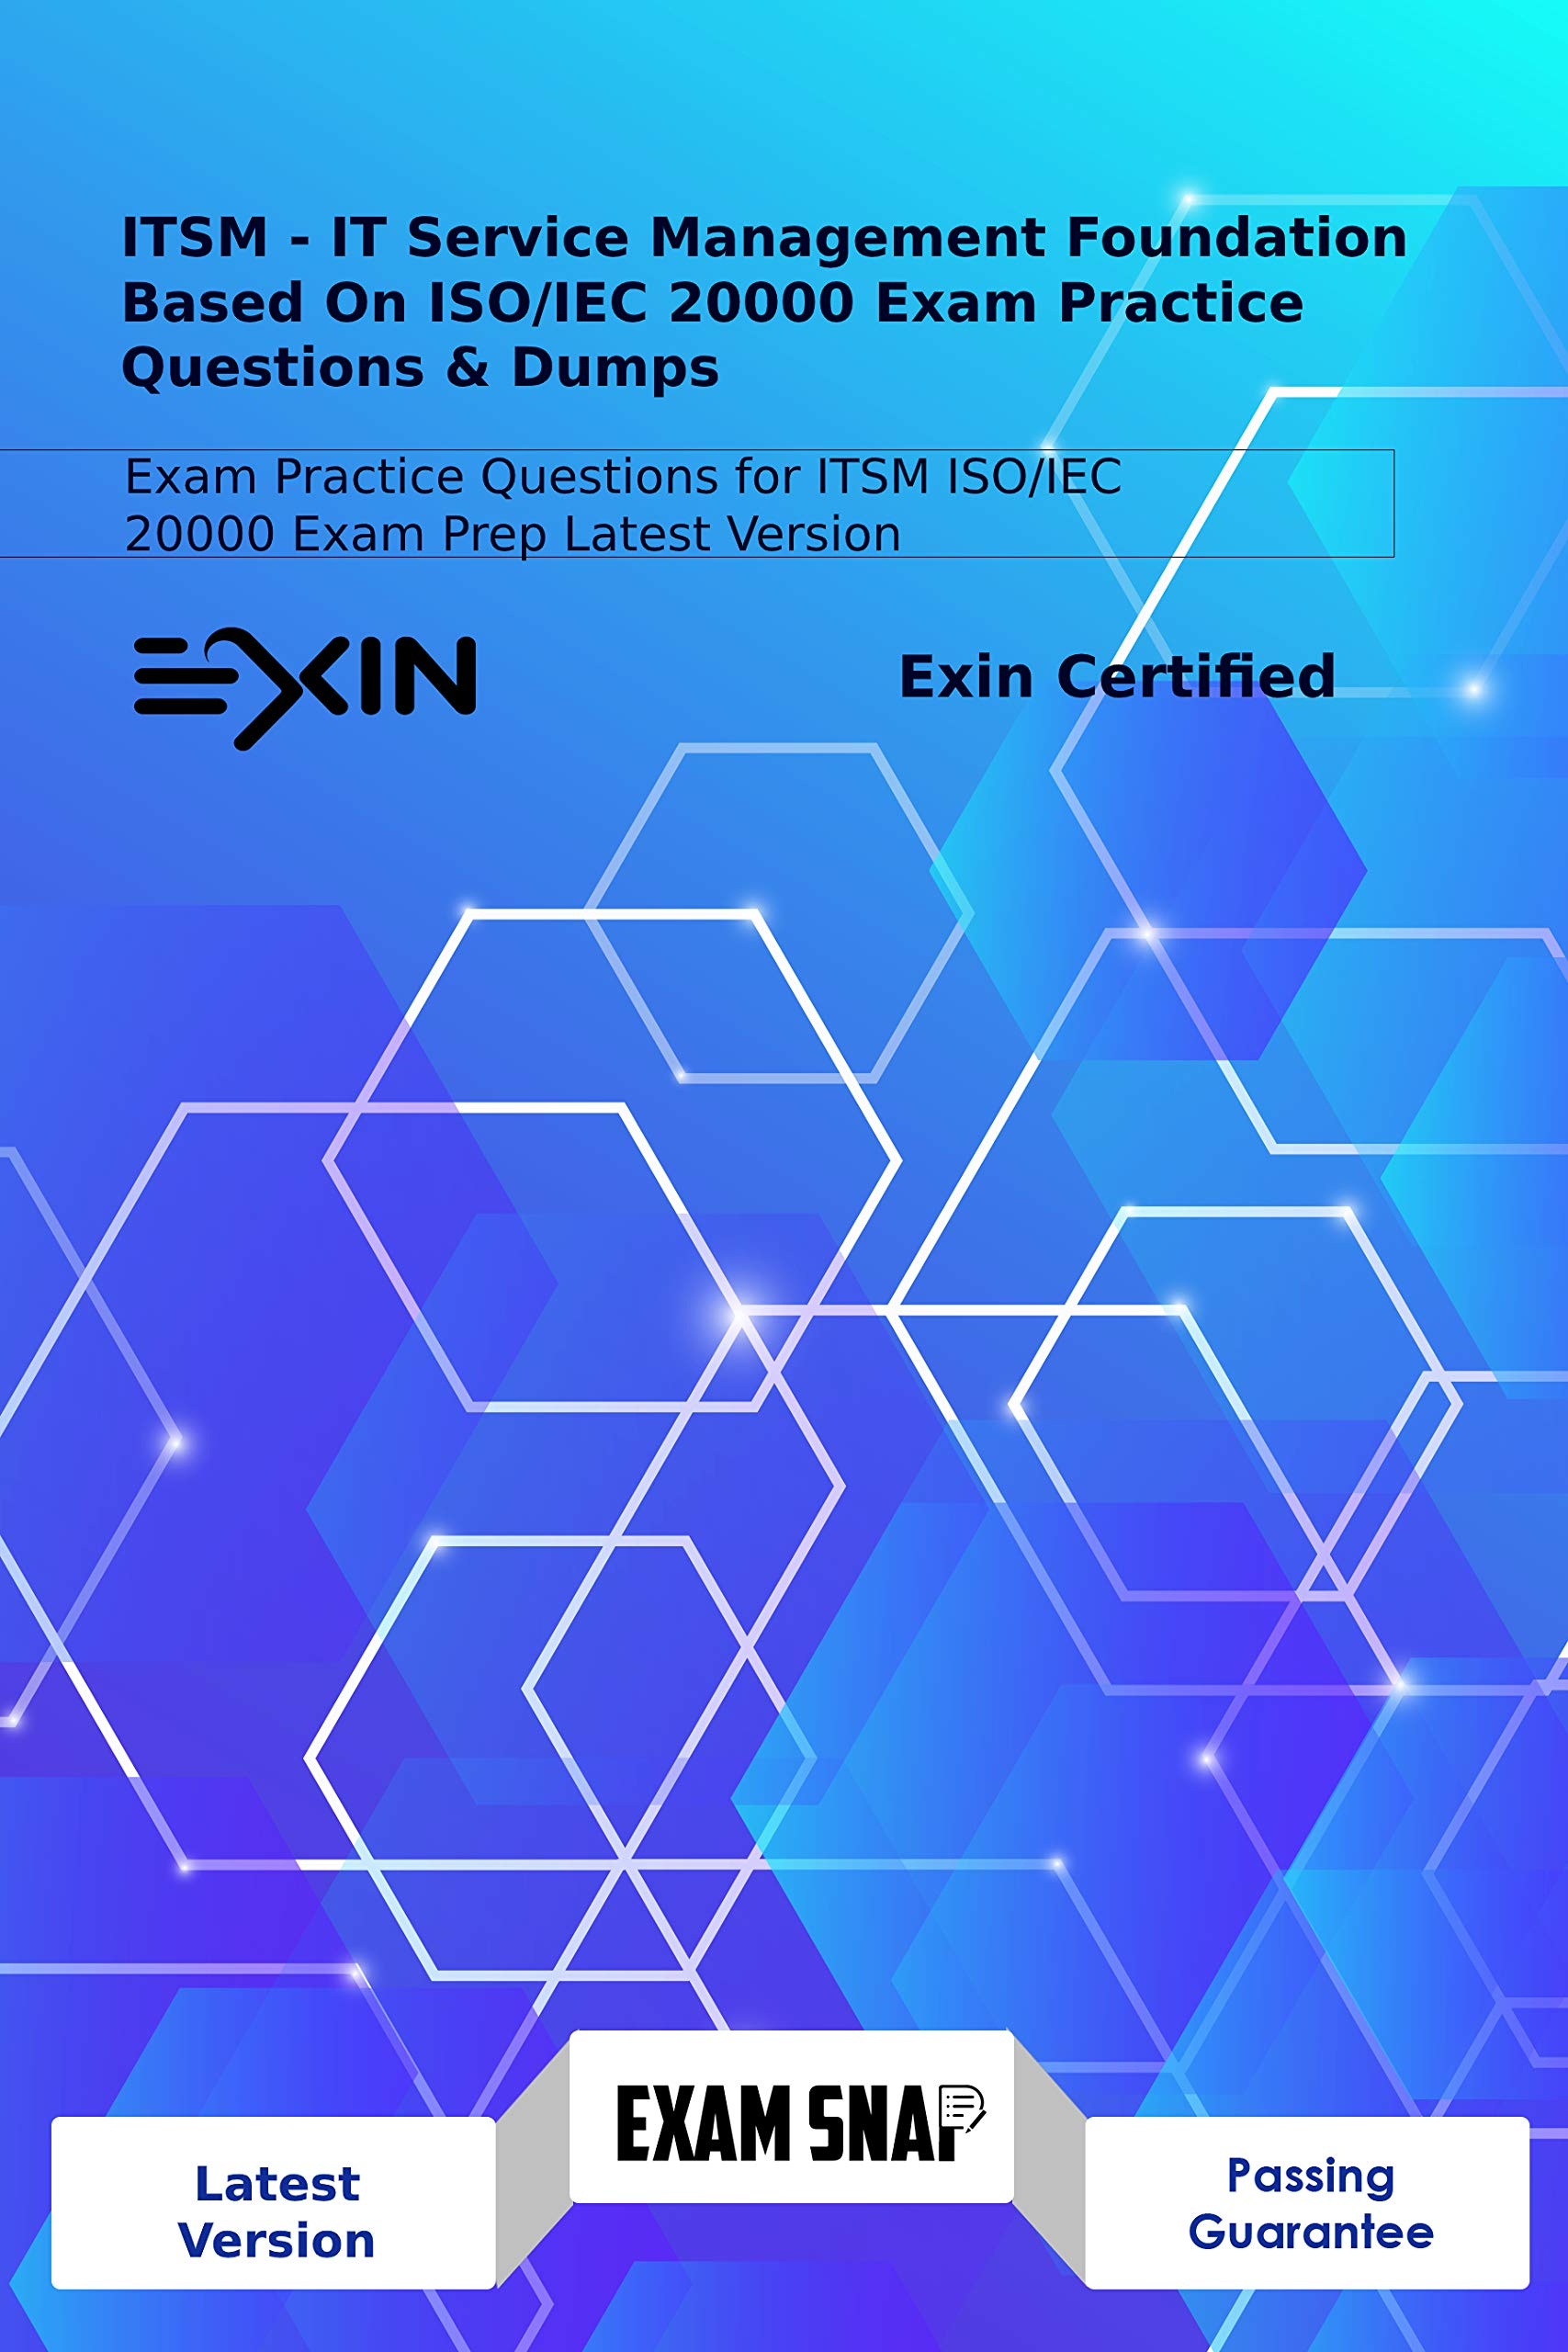 ITSM - IT Service Management Foundation Based On ISO/IEC 20000 Exam Practice Questions & Dumps: Exam Practice Questions for ITSM ISO/IEC 20000 Exam Prep Latest Version